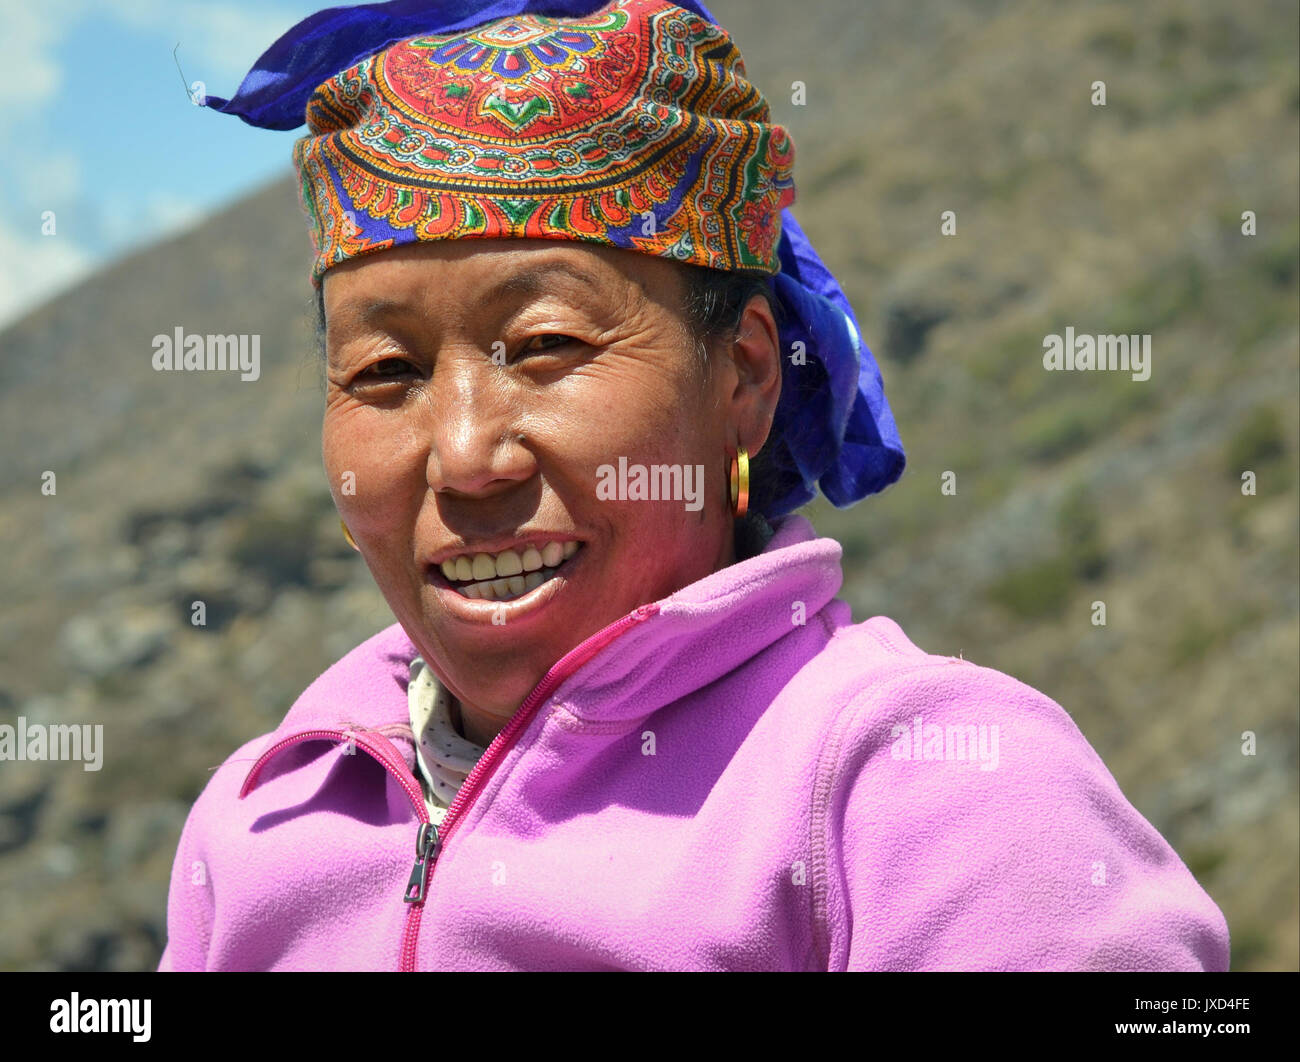 Closeup street portrait (outdoor headshot, three-quarter view) of a middle-aged Sherpa woman with traditional golden Stock Photo